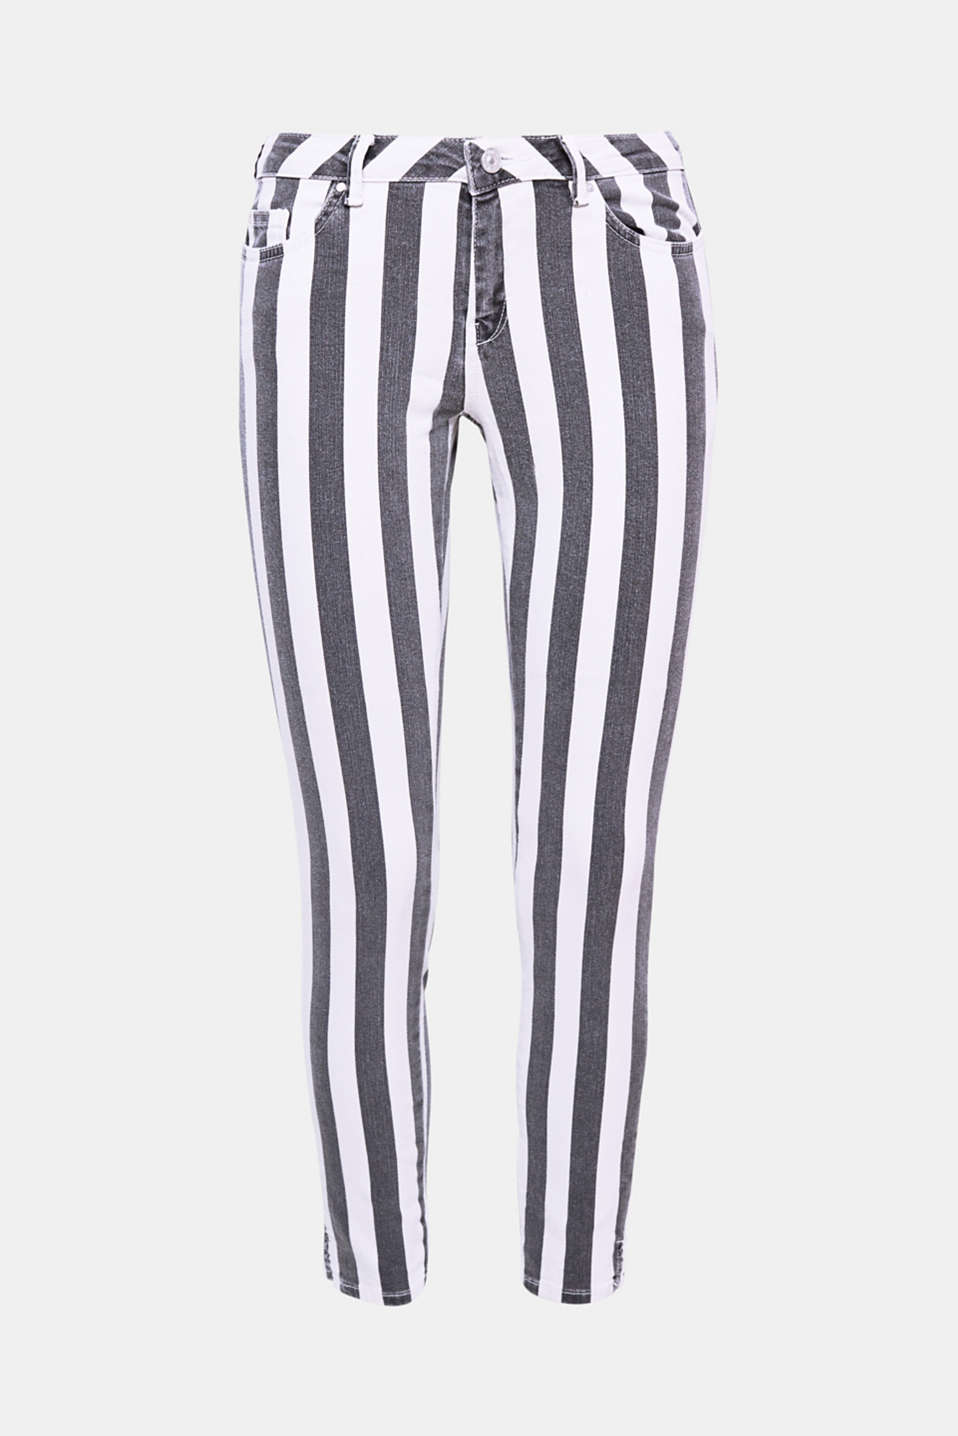 The vertical stripes and narrow, ankle-skimming cut give these stretch jeans an innovative, modern twist.